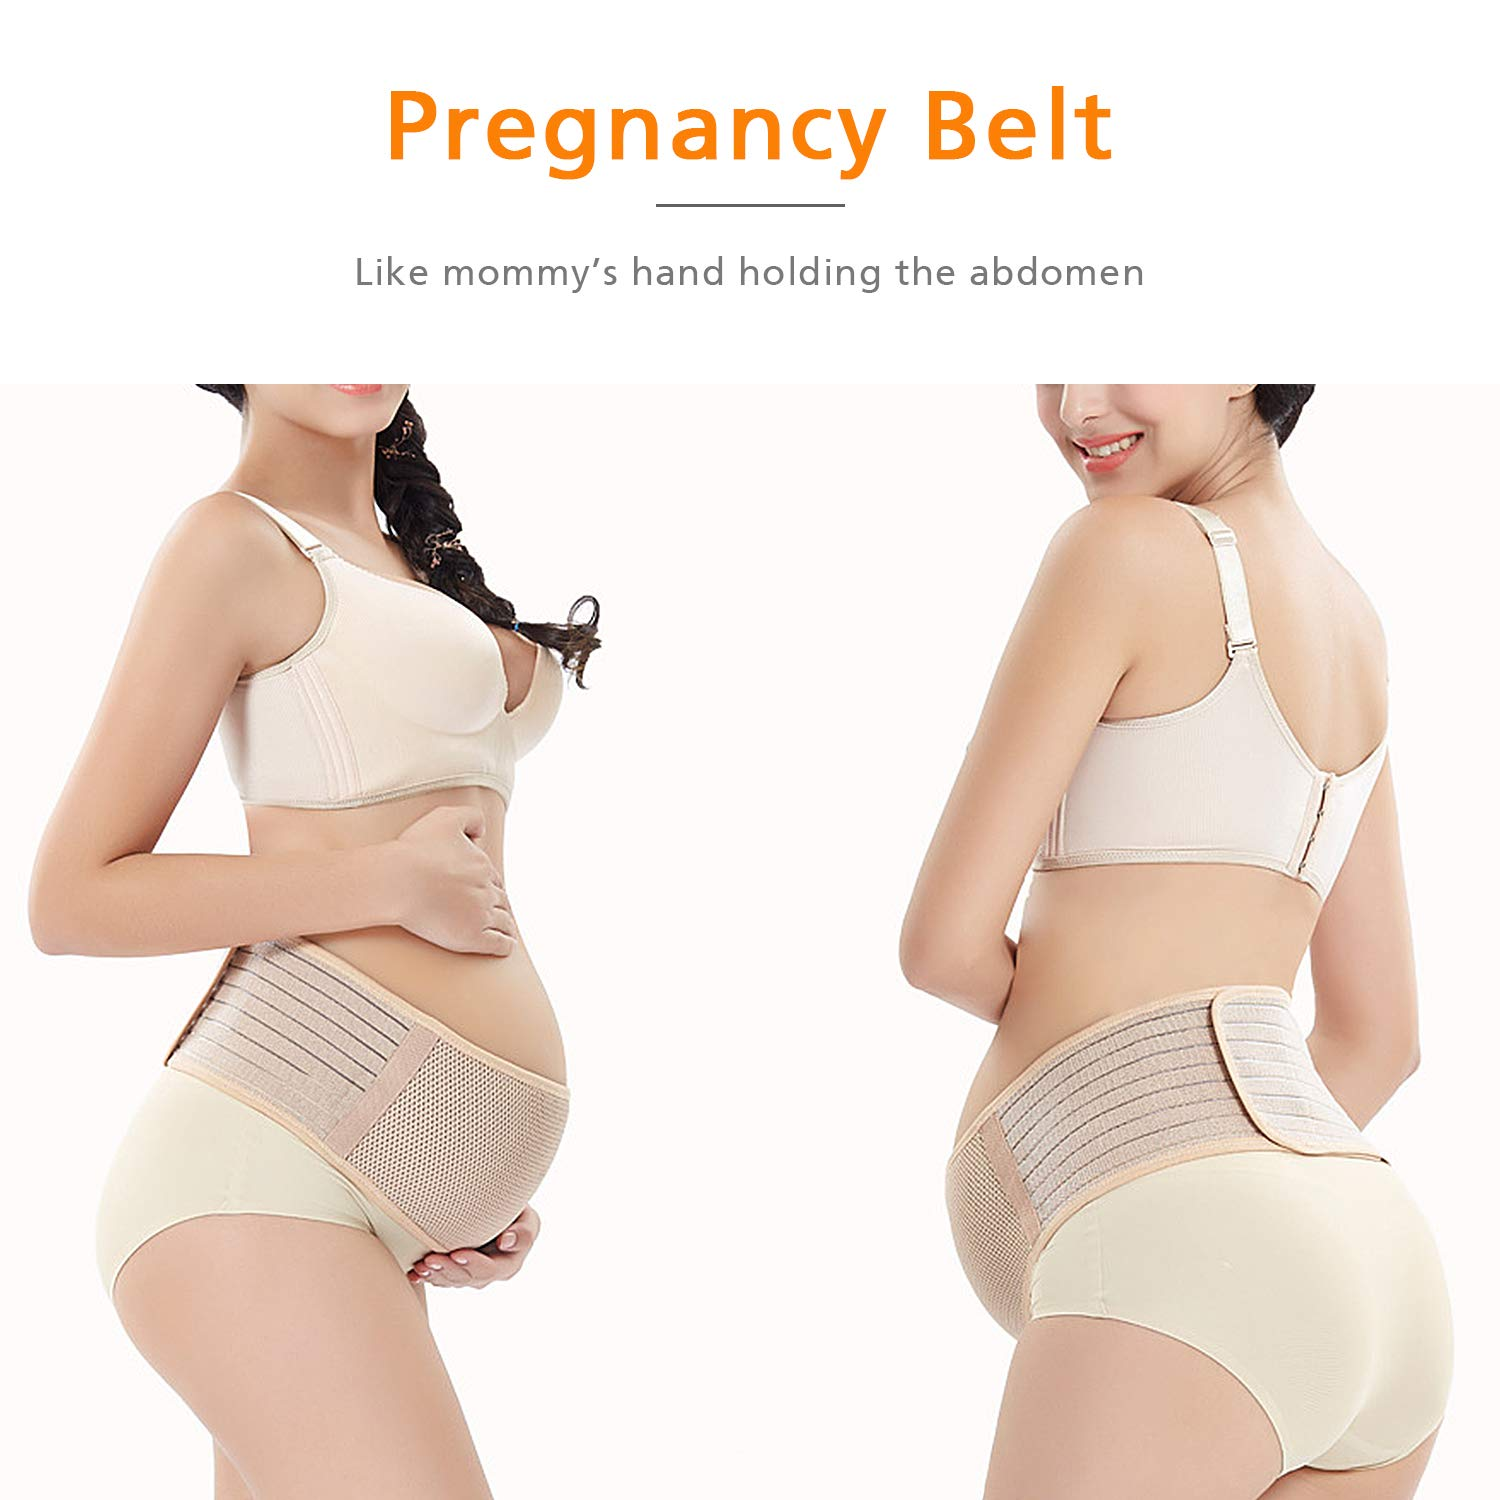 Pelvic Pregnancy Belt Relieve Hip Adjustable Size Lumbar Lower Back Pain Breathable Abdominal Binder Brace Maternity Belly Support Band Comfortable Prenatal Cradle For Baby Intimates Maternity